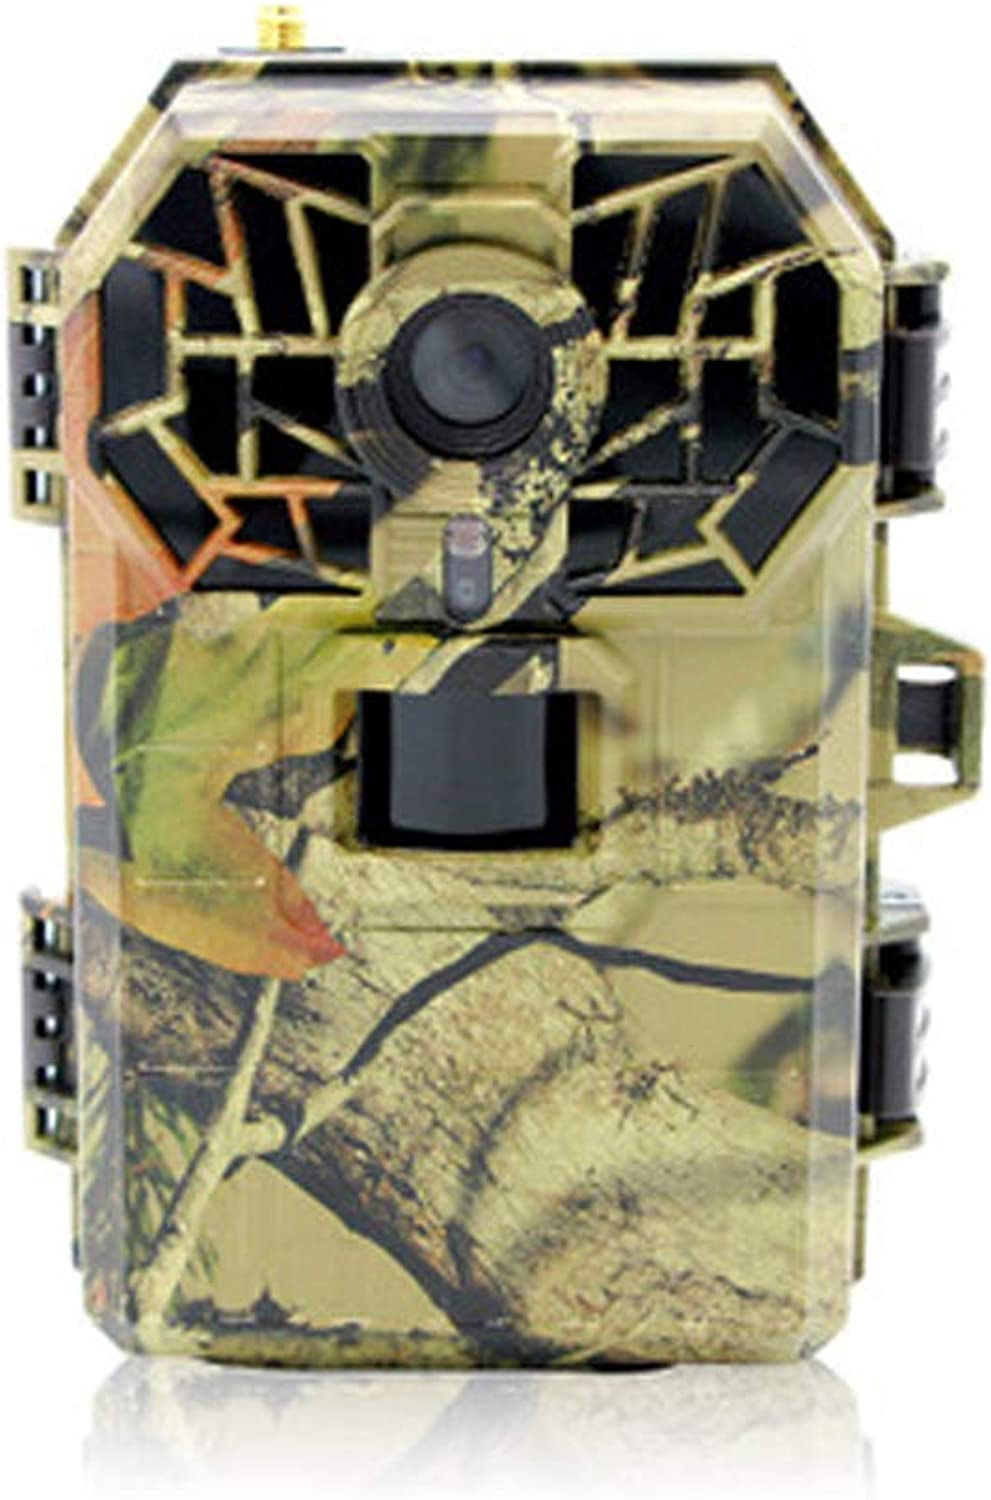 Hunting Camera Outdoor Motion Activated Wildlife Camera Trail Camera with Infrared Night Vision, Movement Sensor & Remote